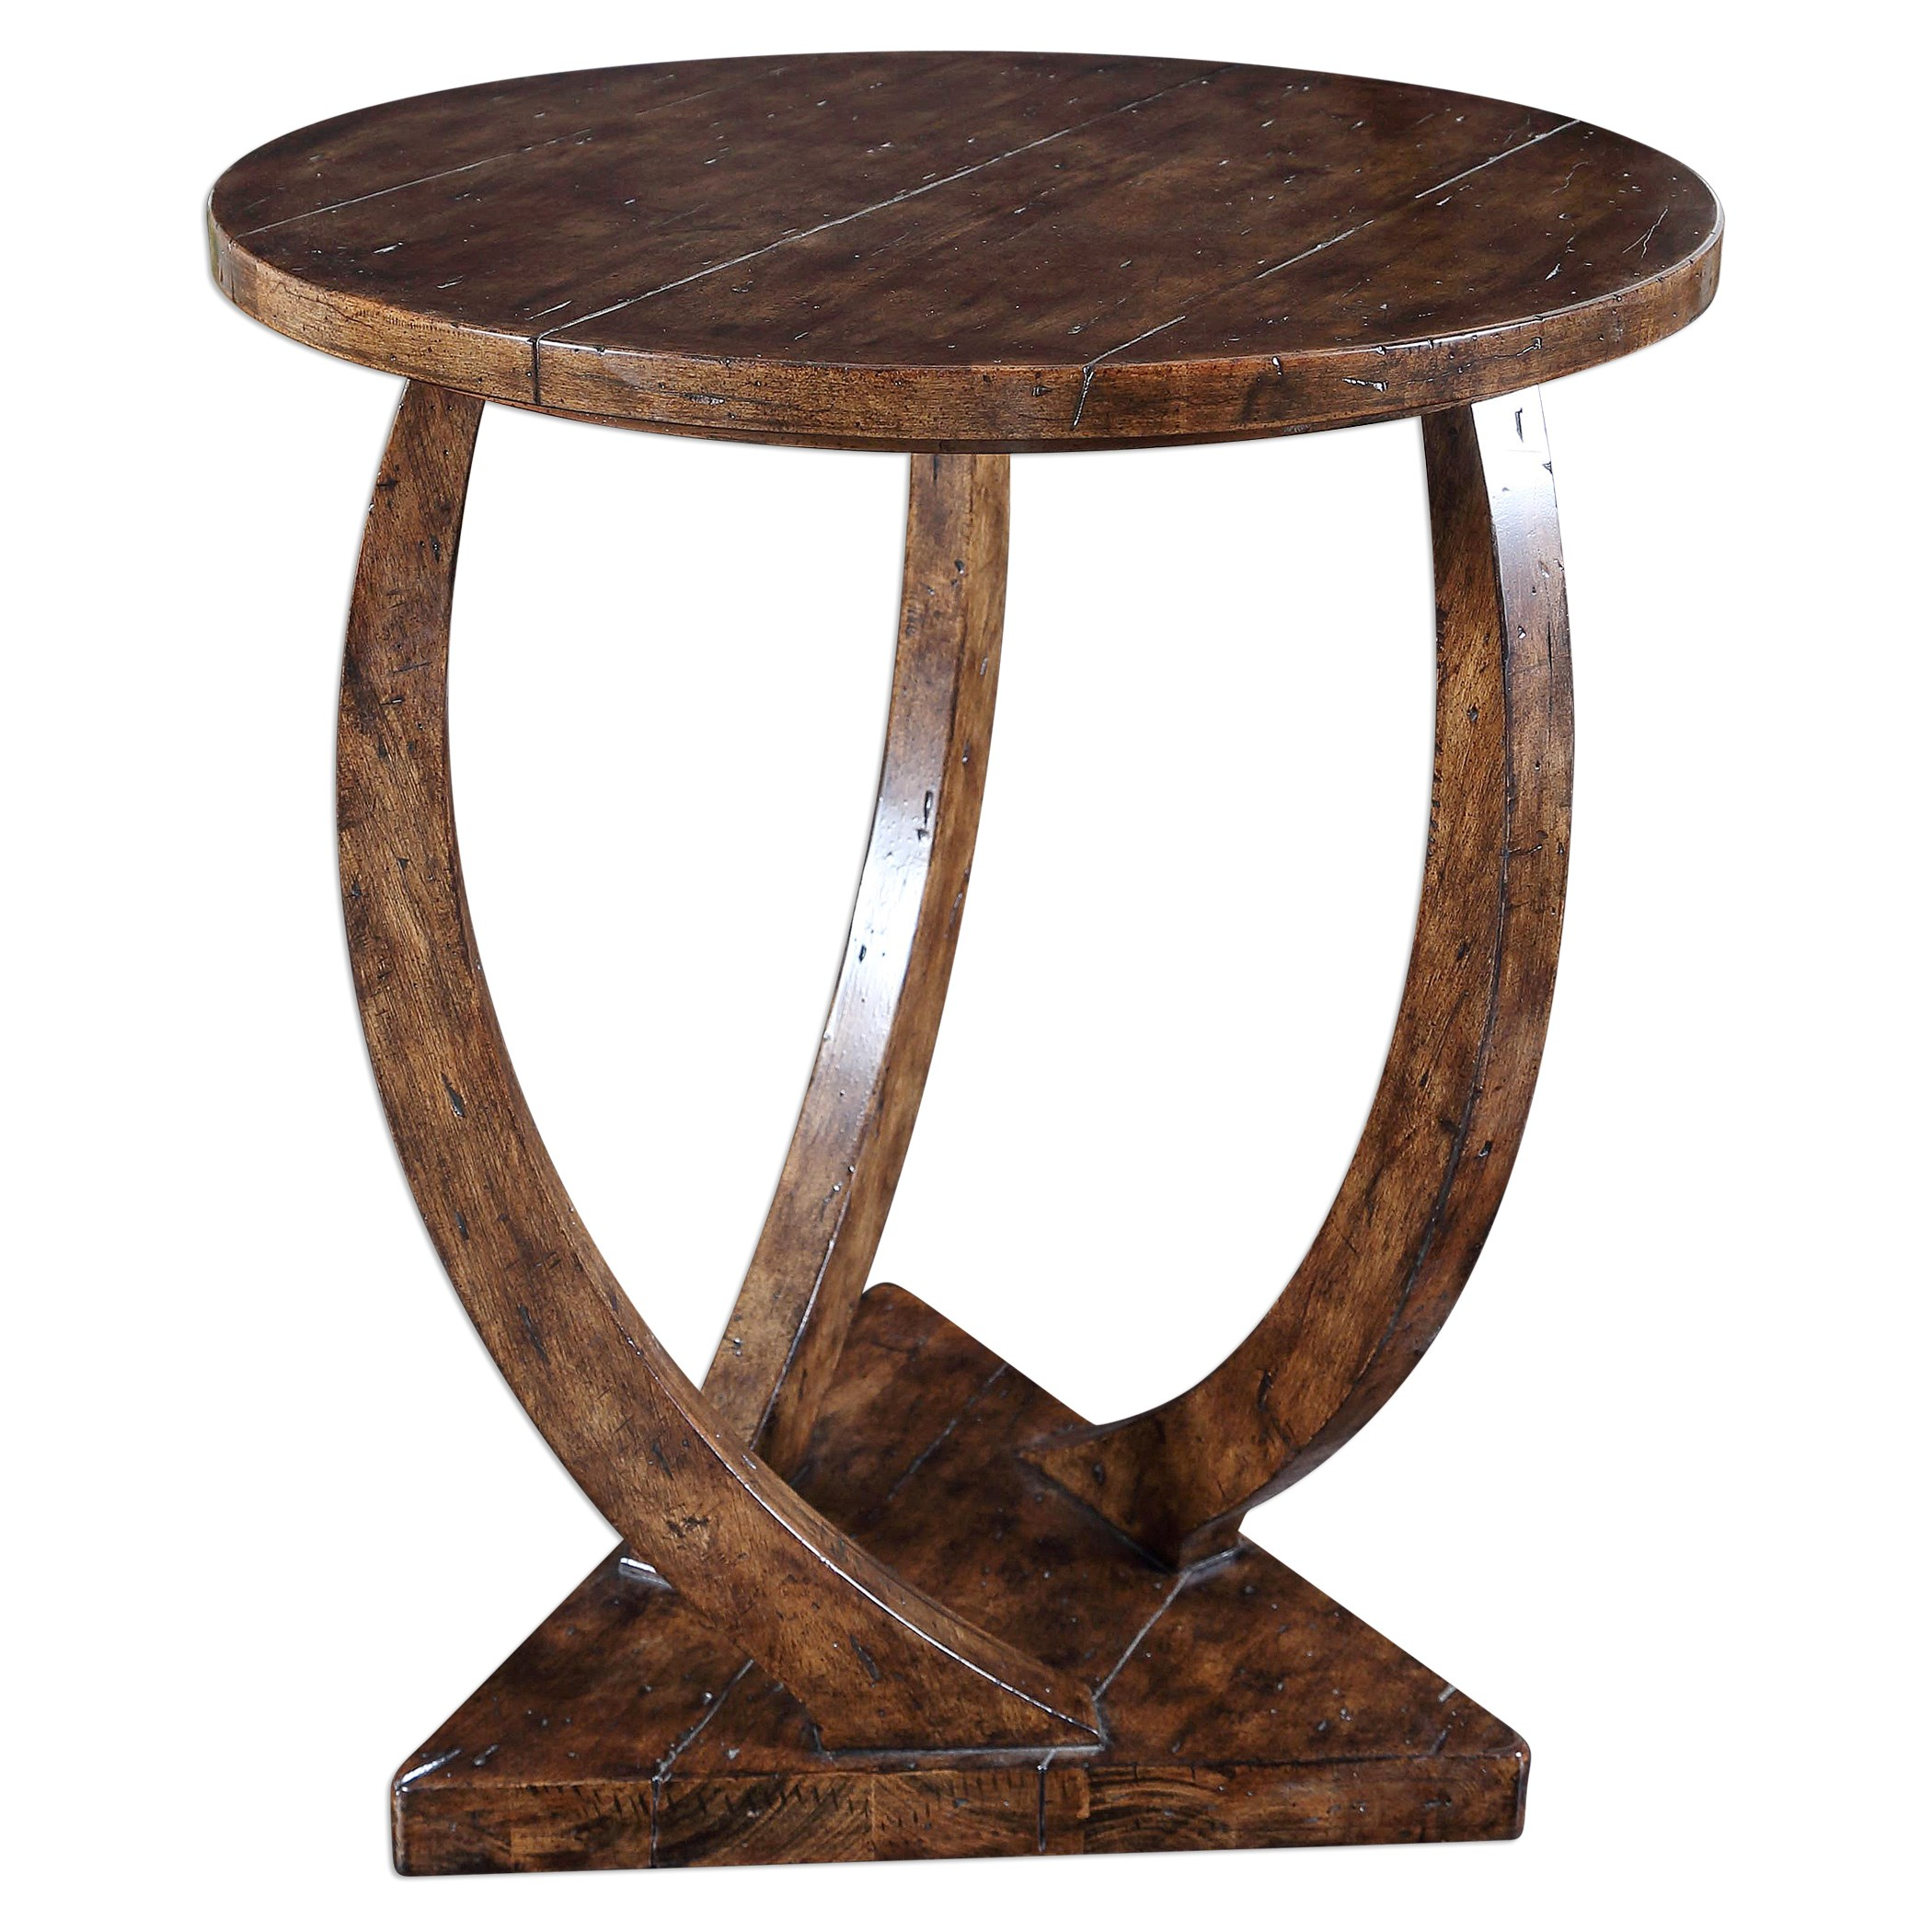 Medium image of uttermost accent furniture 25913 pandhari round accent table   becker furniture world   end tables